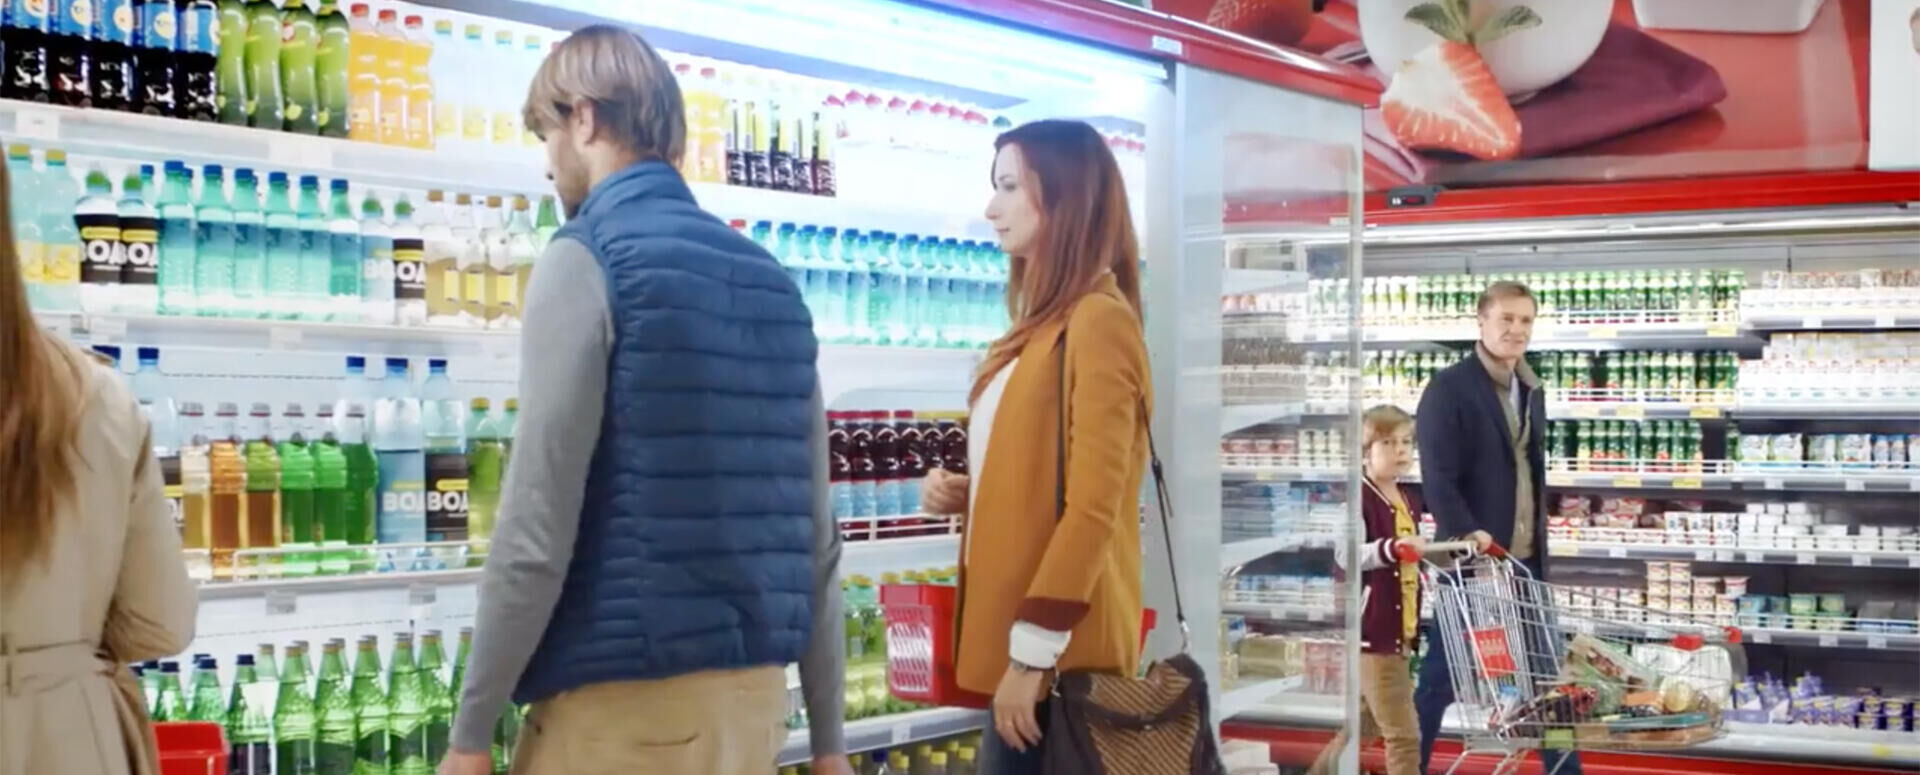 The crucial factors that <strong>differentiate Russian food retail and loyalty</strong>